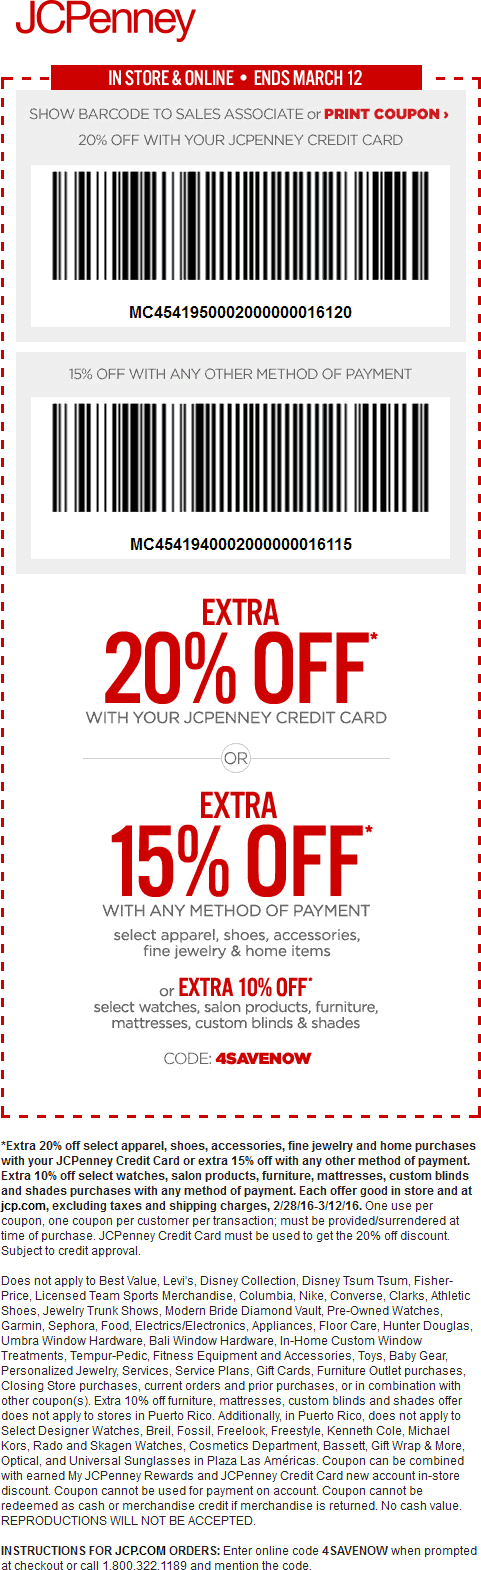 JCPenney Coupon November 2017 15% off at JCPenney, or online via promo code 4SAVENOW